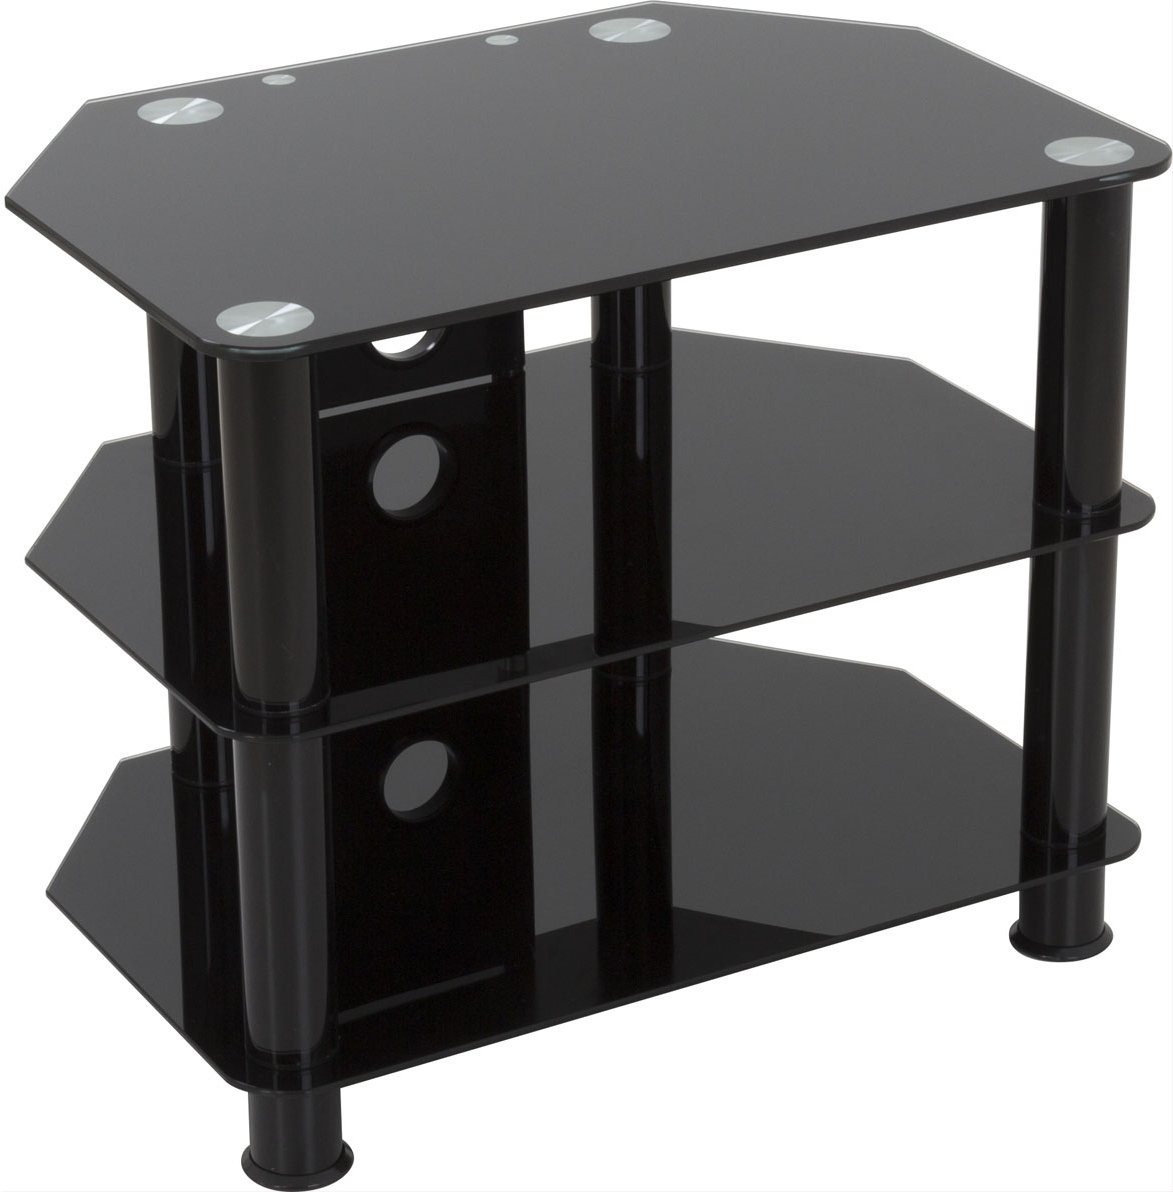 Black Glass Floor Stand With Chrome Legs For TVs Up To 32 AVF